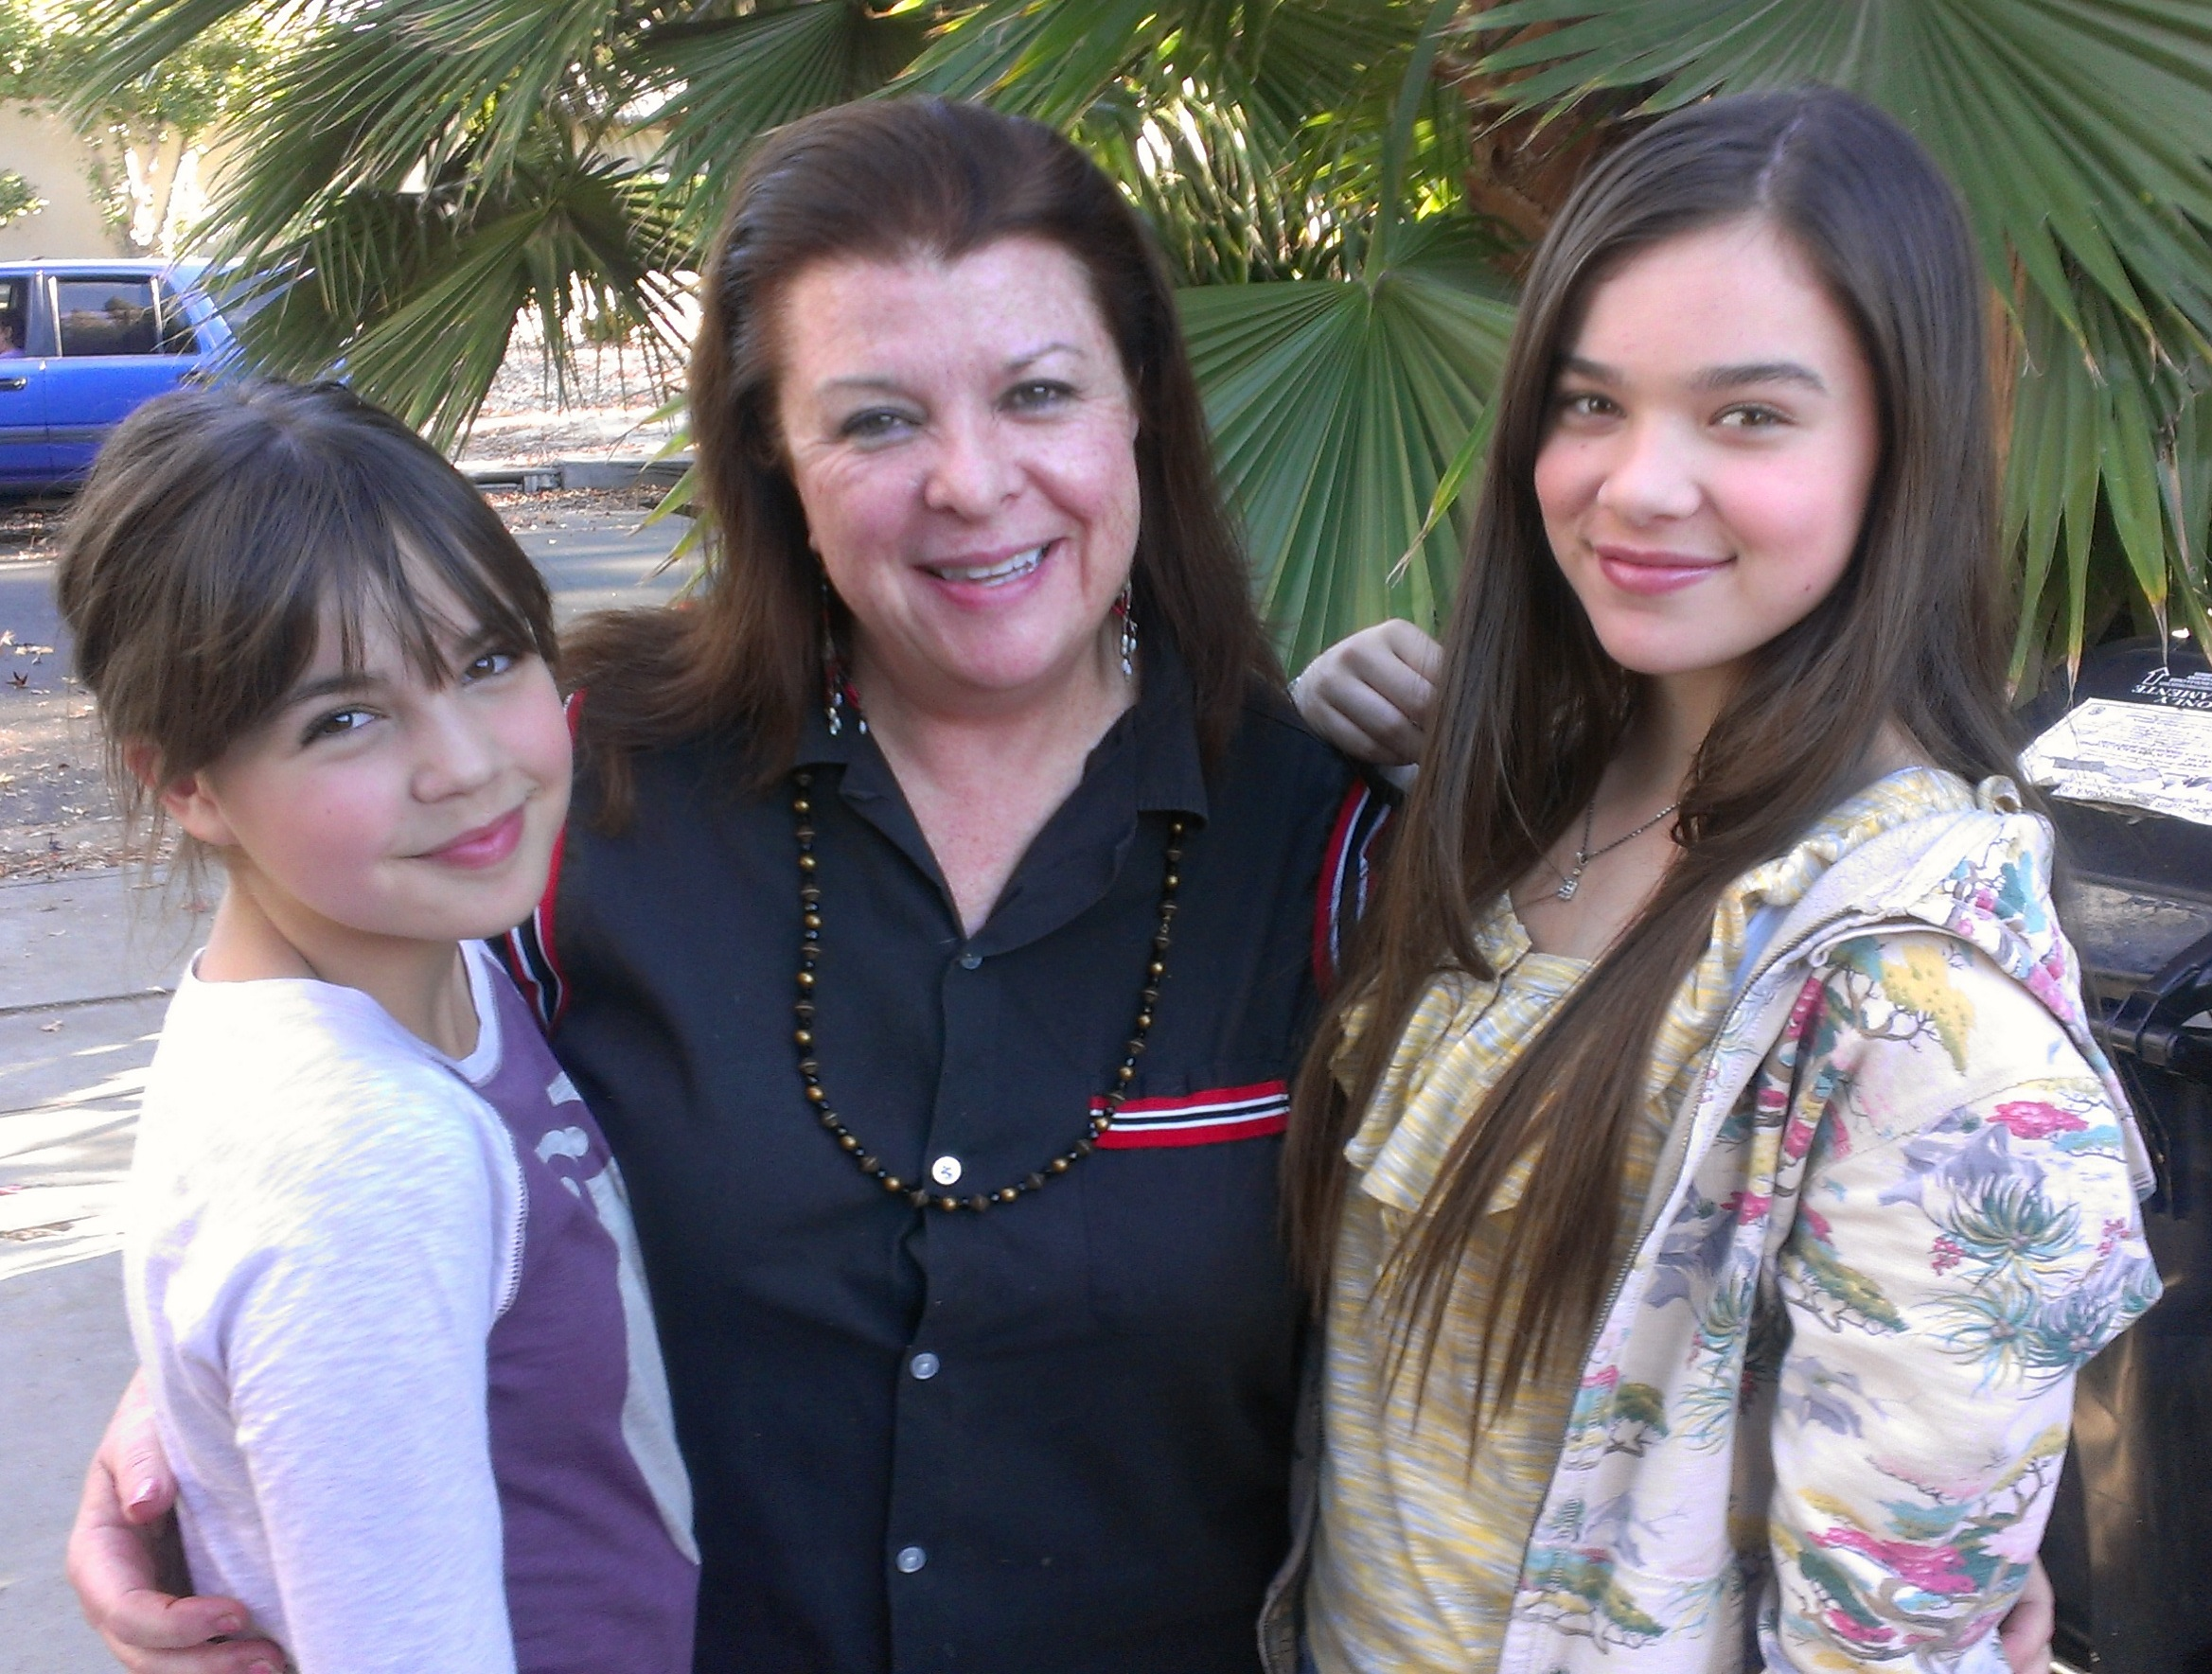 On location with Bailee Madison and Hailey Steinfeld